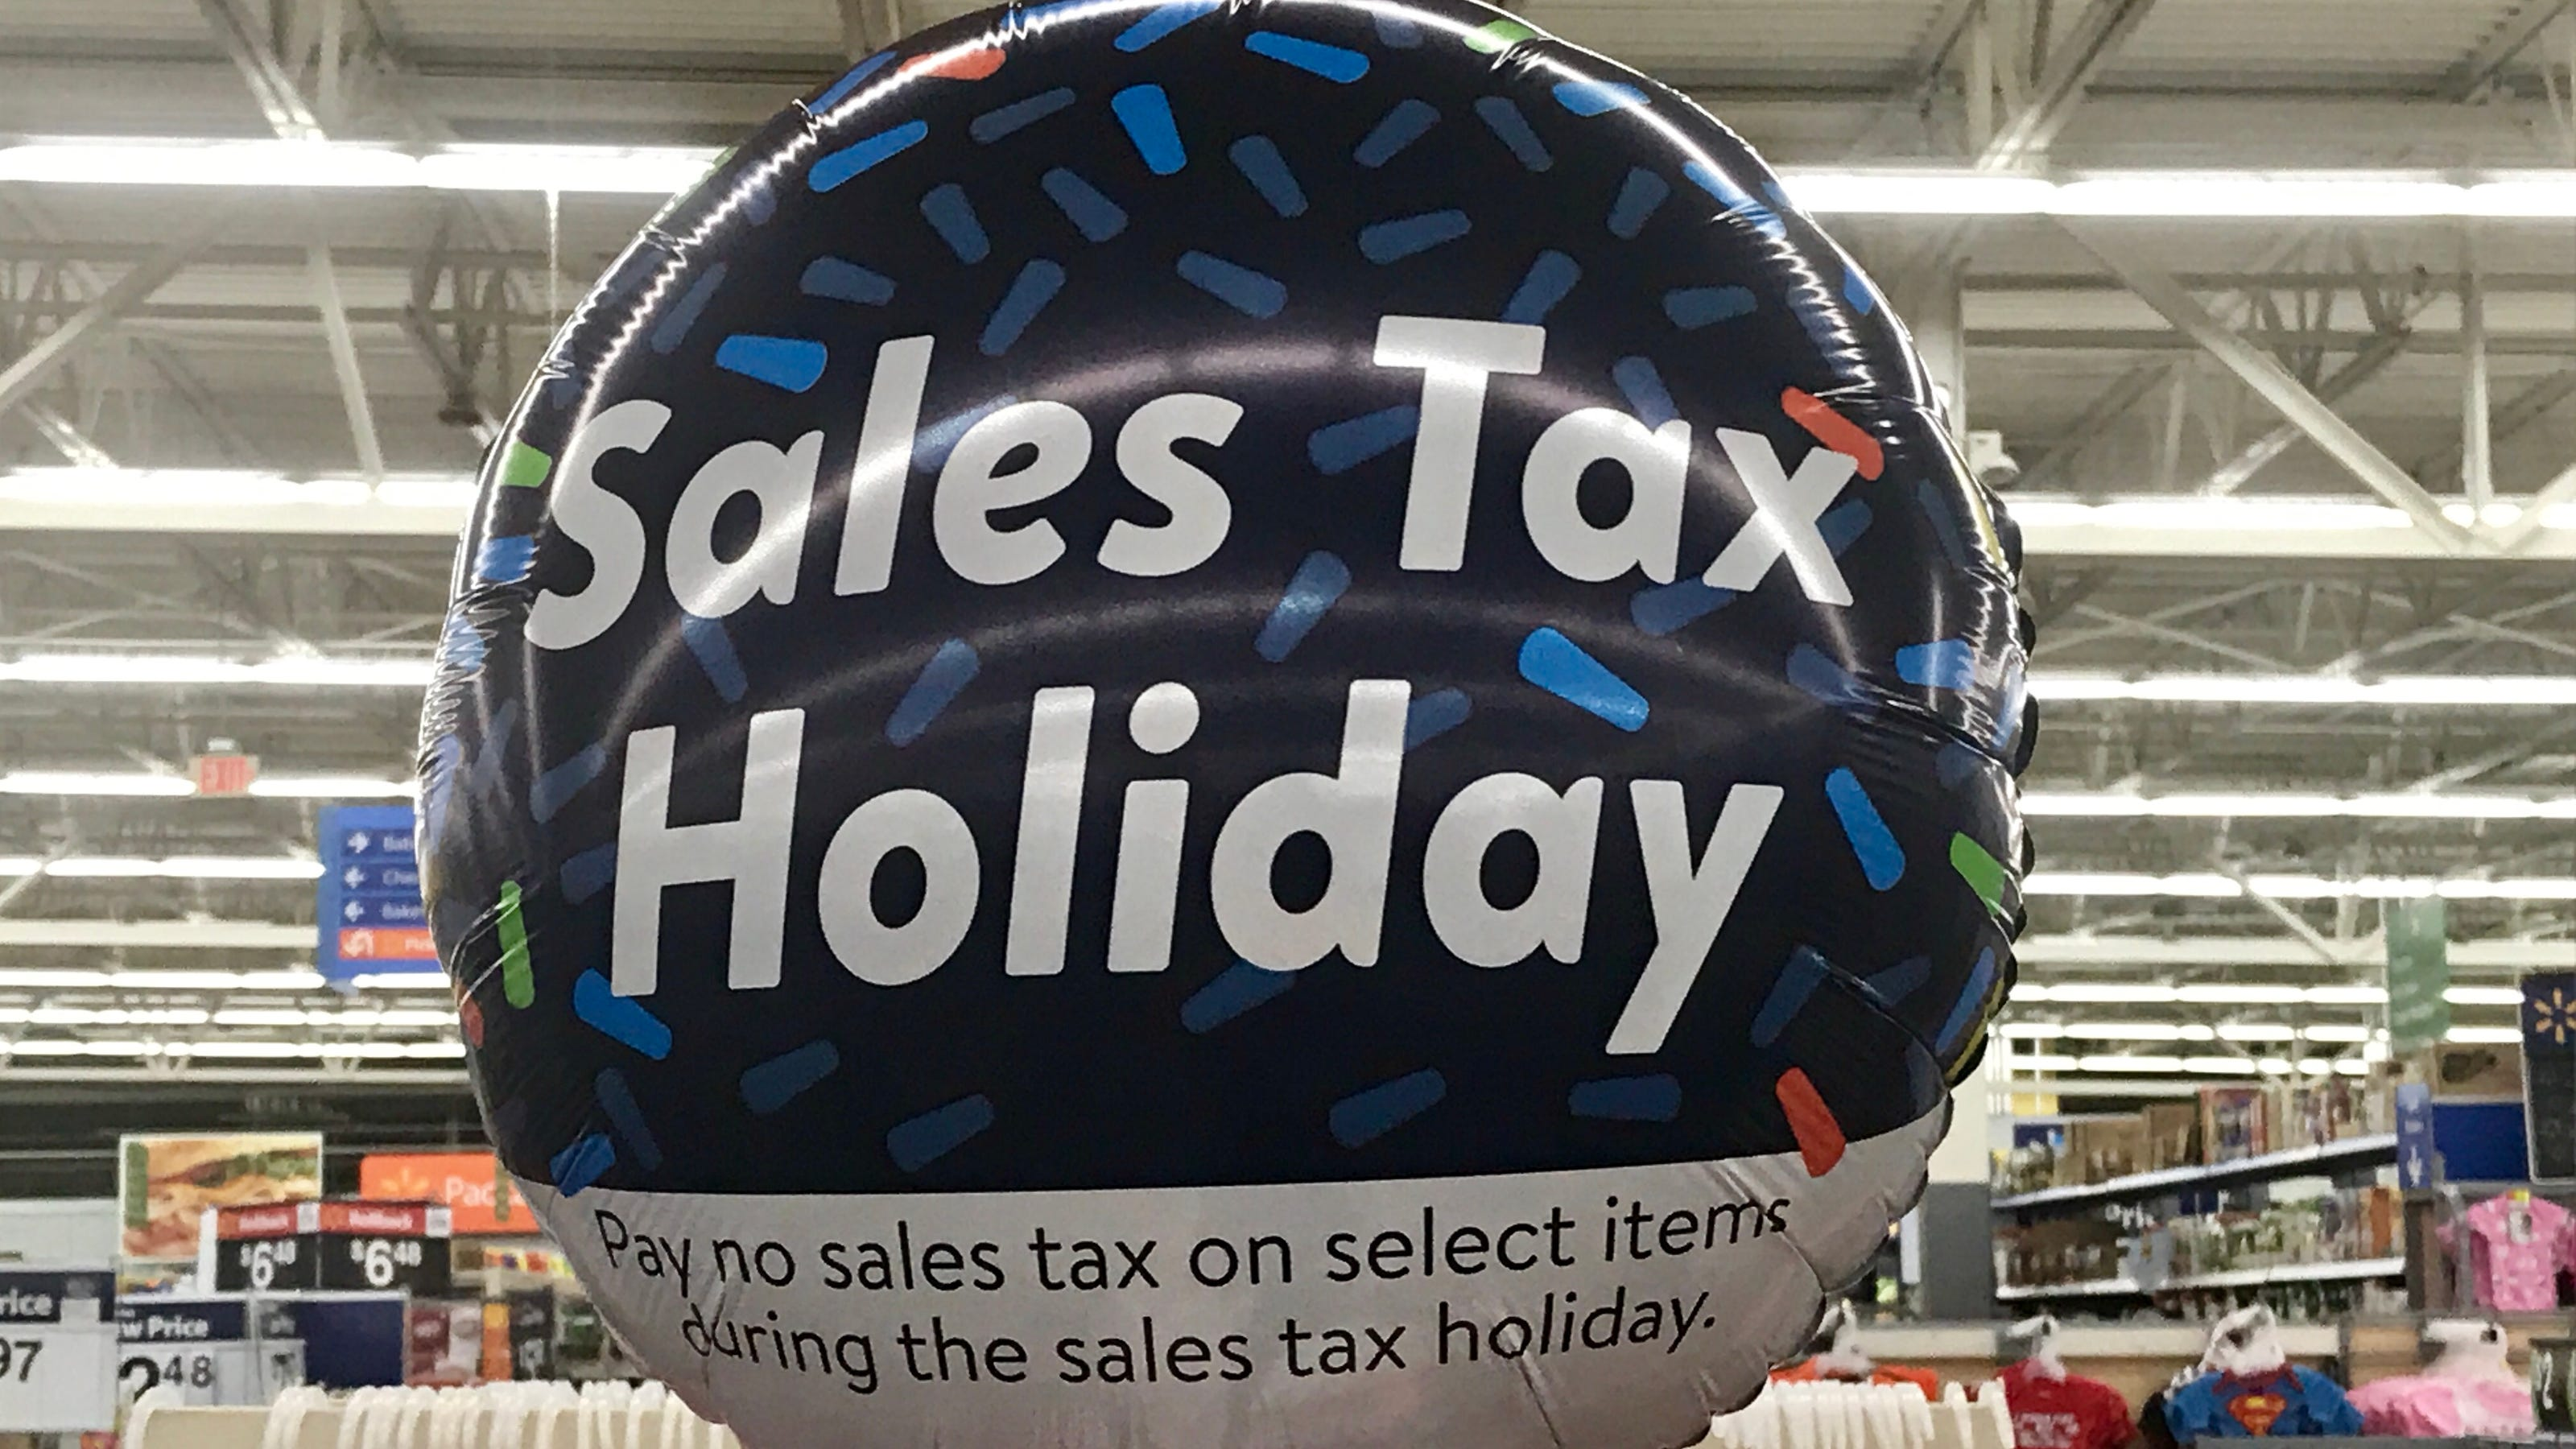 Iowa Sales Tax Holiday 2020 When Is It What Can I Buy Are Masks Included